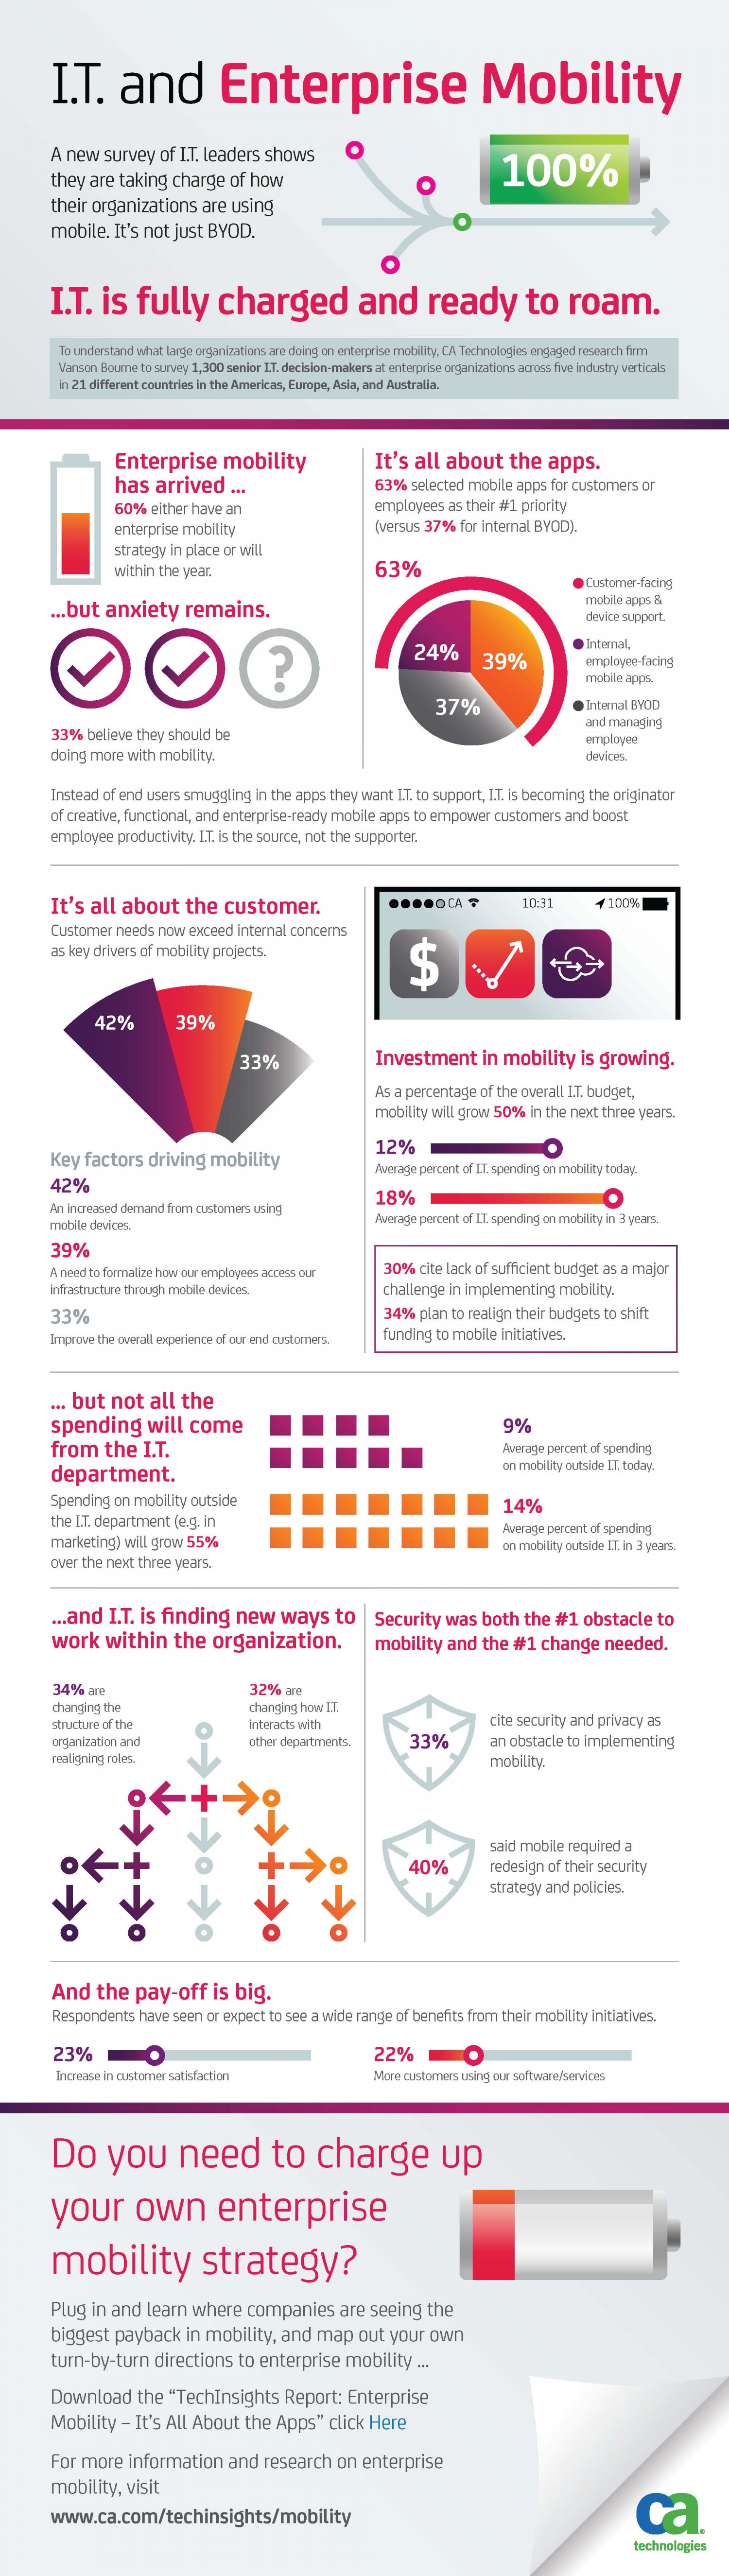 IT and Enterprise Mobility: IT is Fully Charged and Ready to Roam Infographic